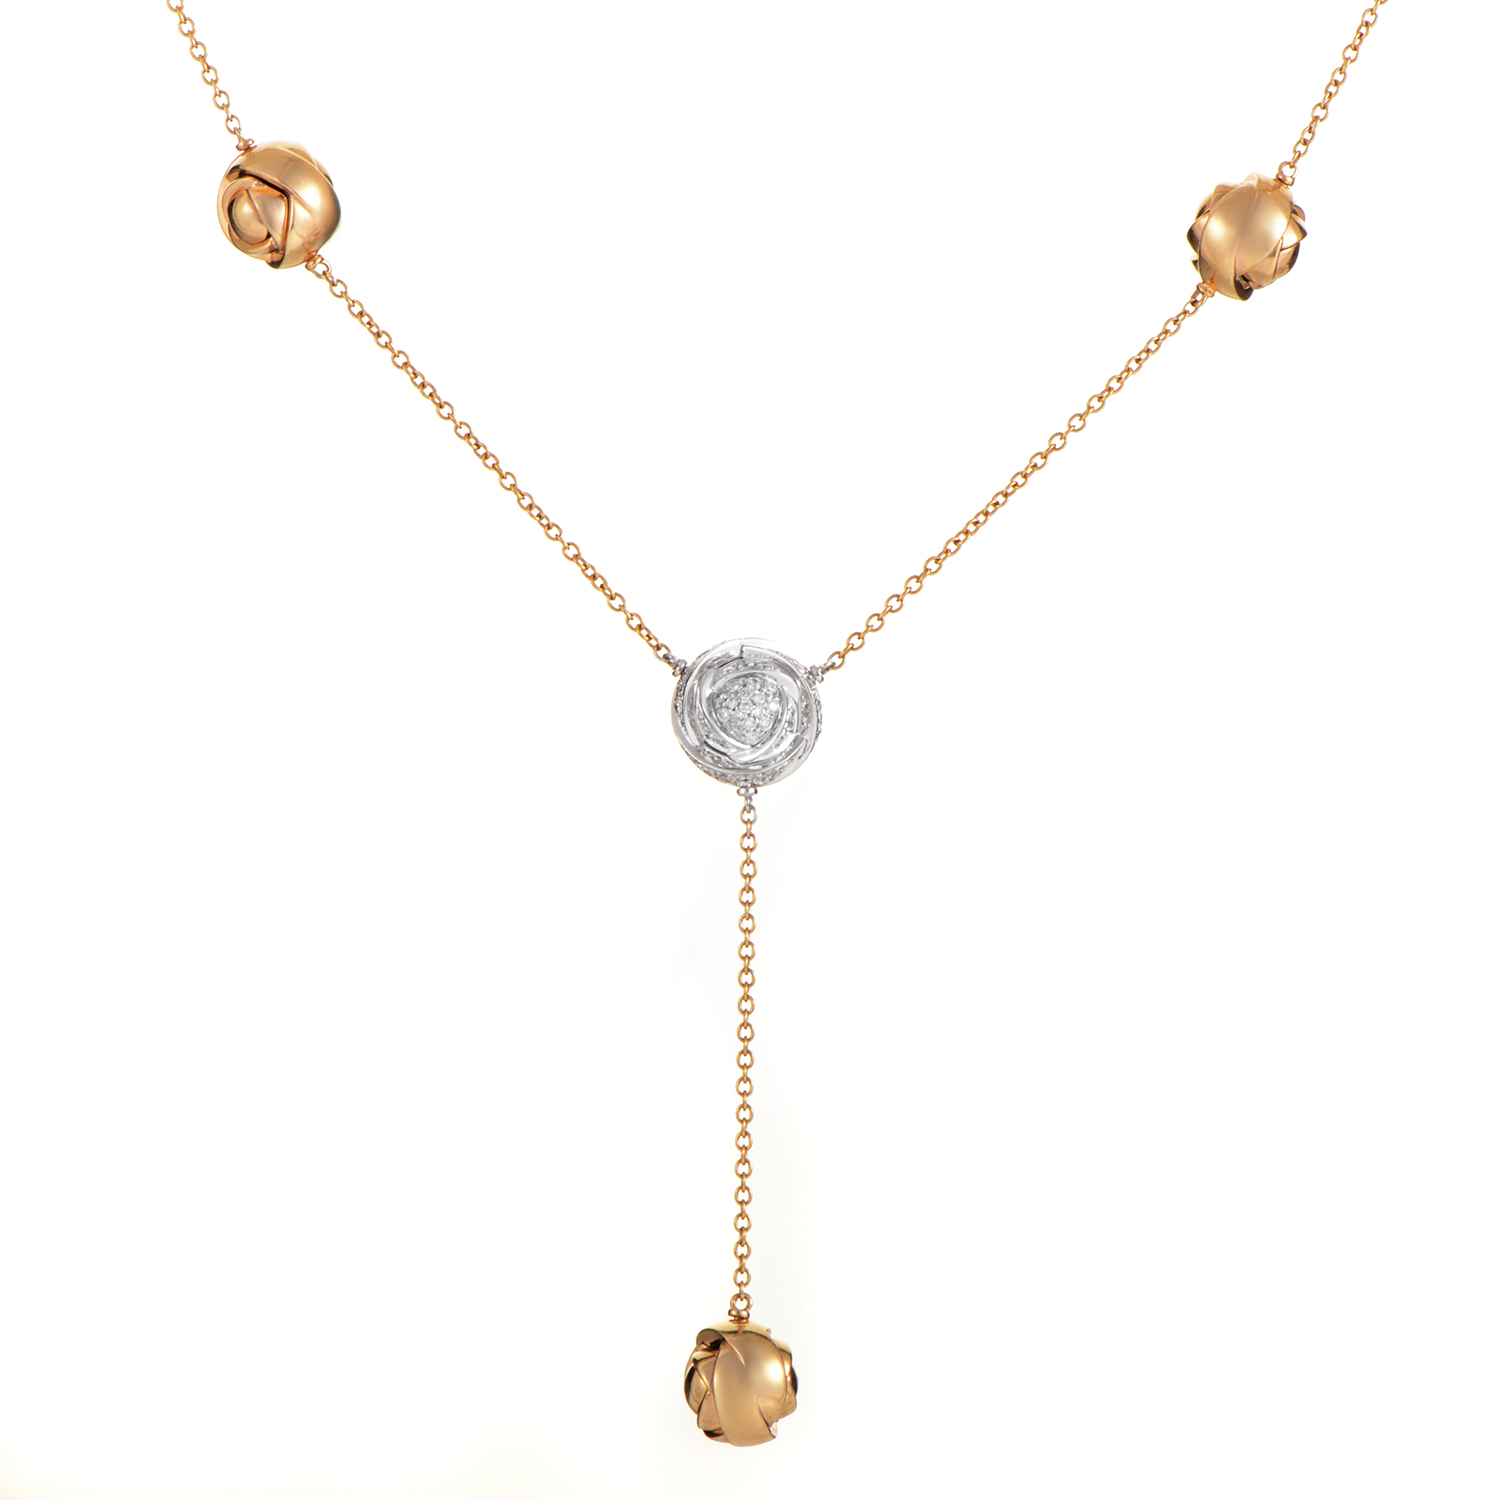 Bocciollo 18K Multi-Tone Gold Diamond Necklace